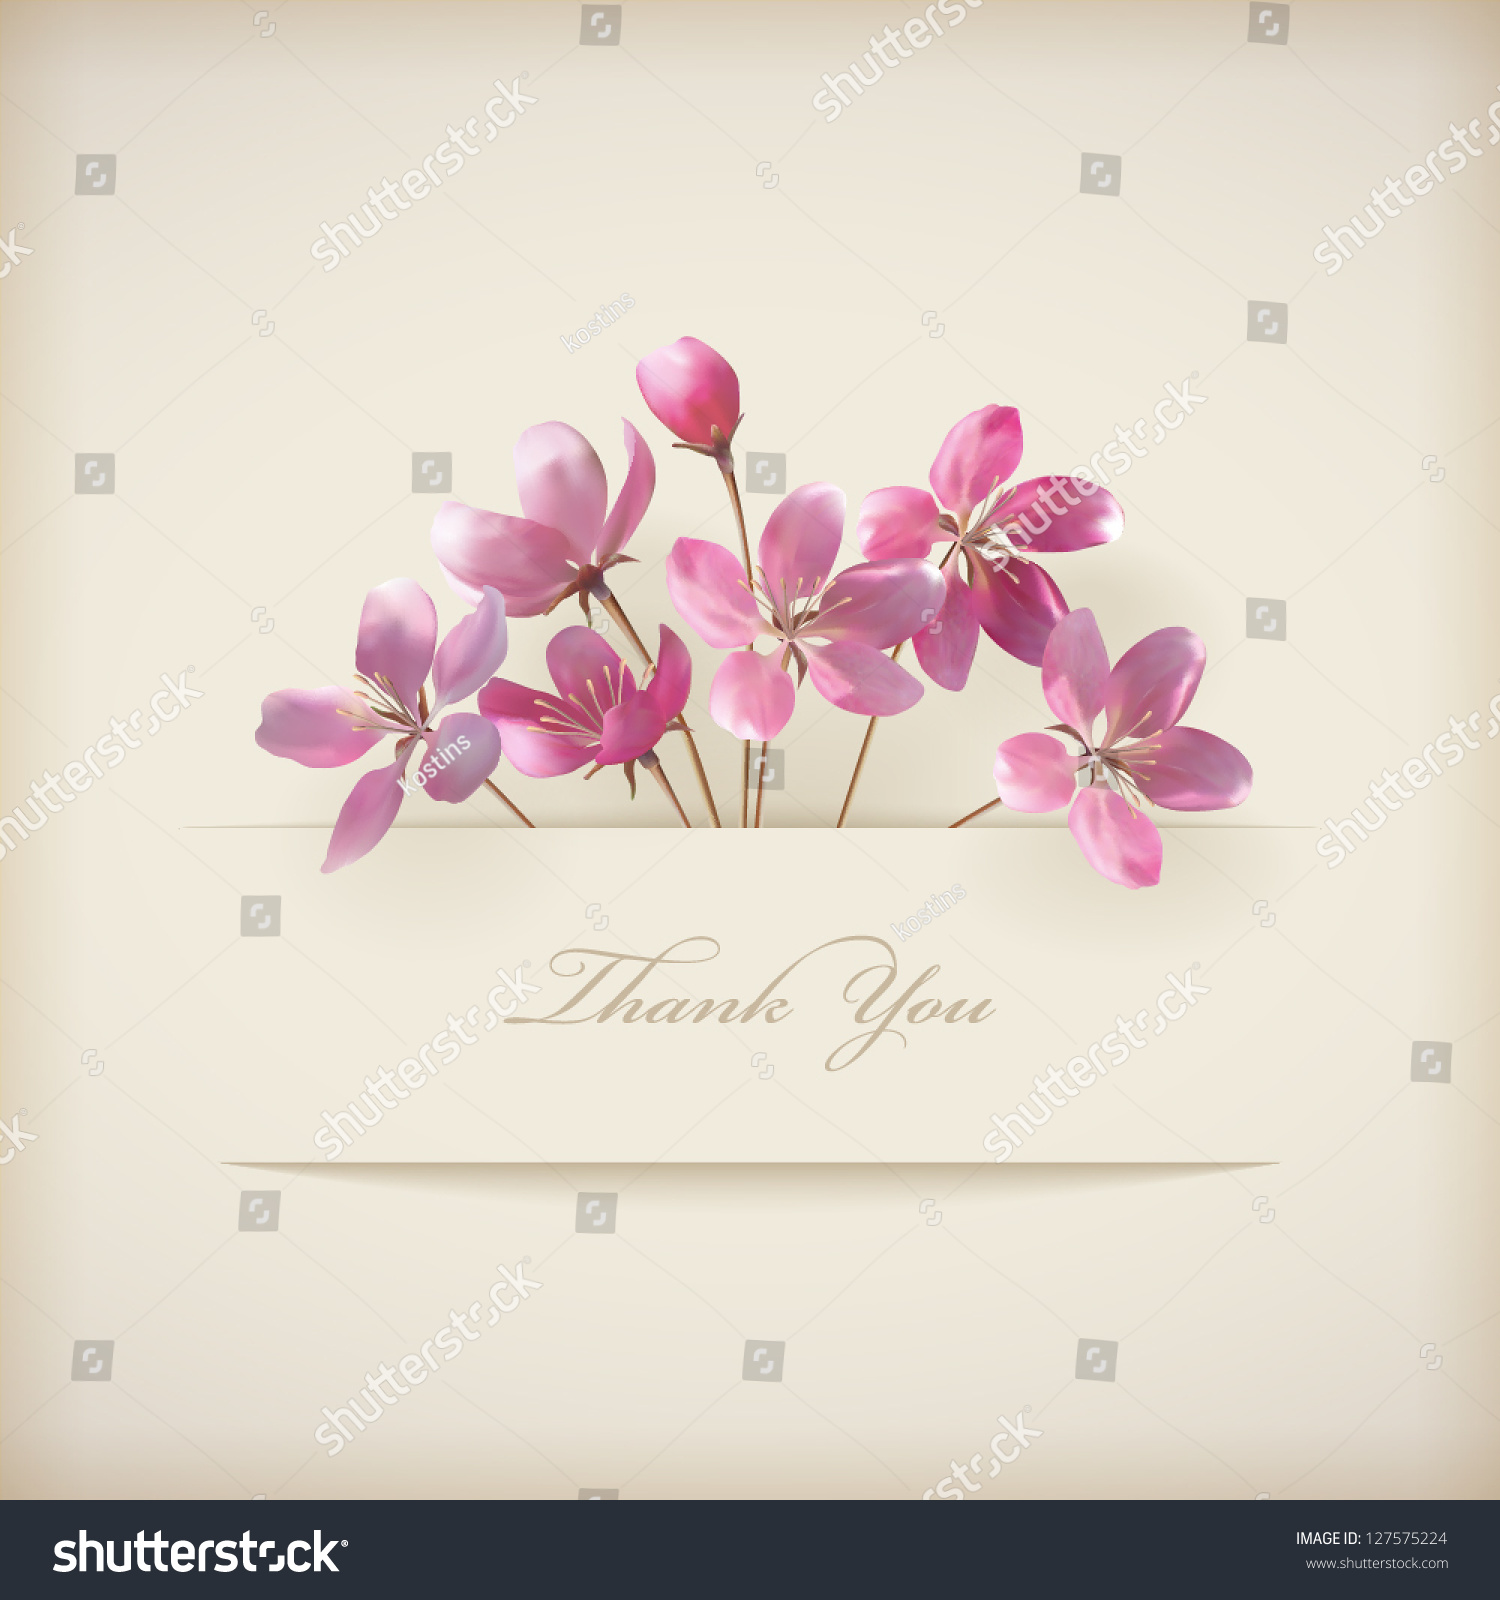 Floral Thank You Card Beautiful Realistic Stock Vector 127575224 ...